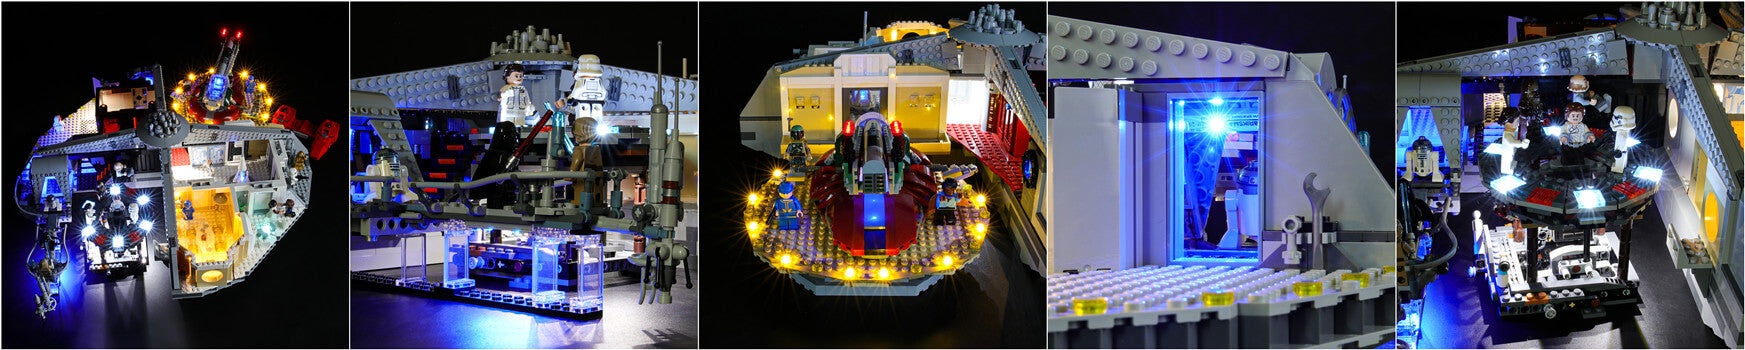 lego star wars cloud city with lights